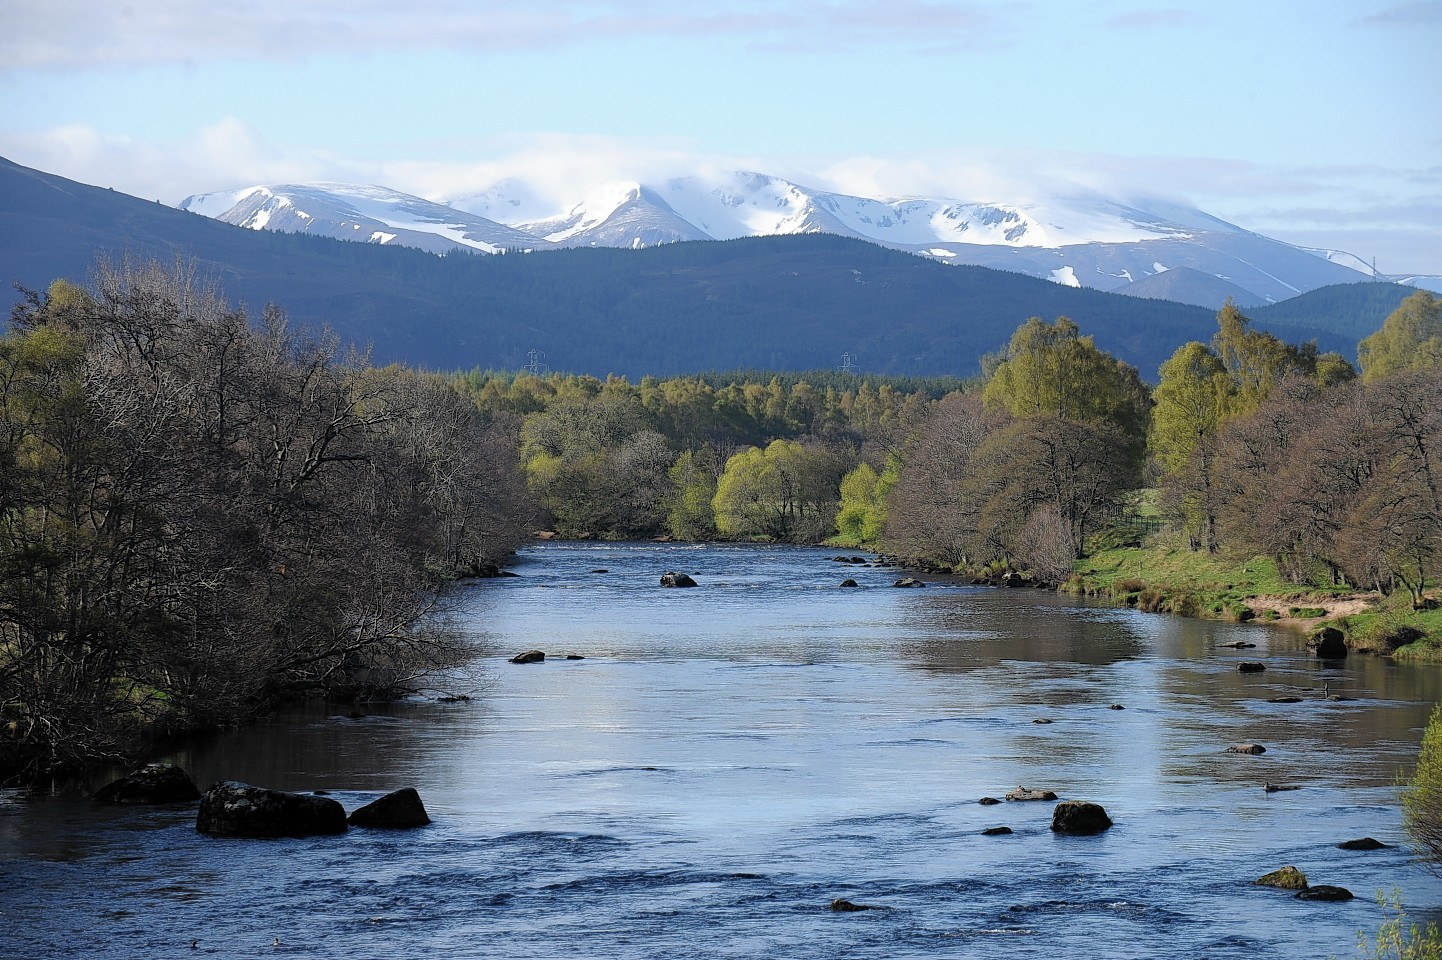 The angler was fishing in the River Spey